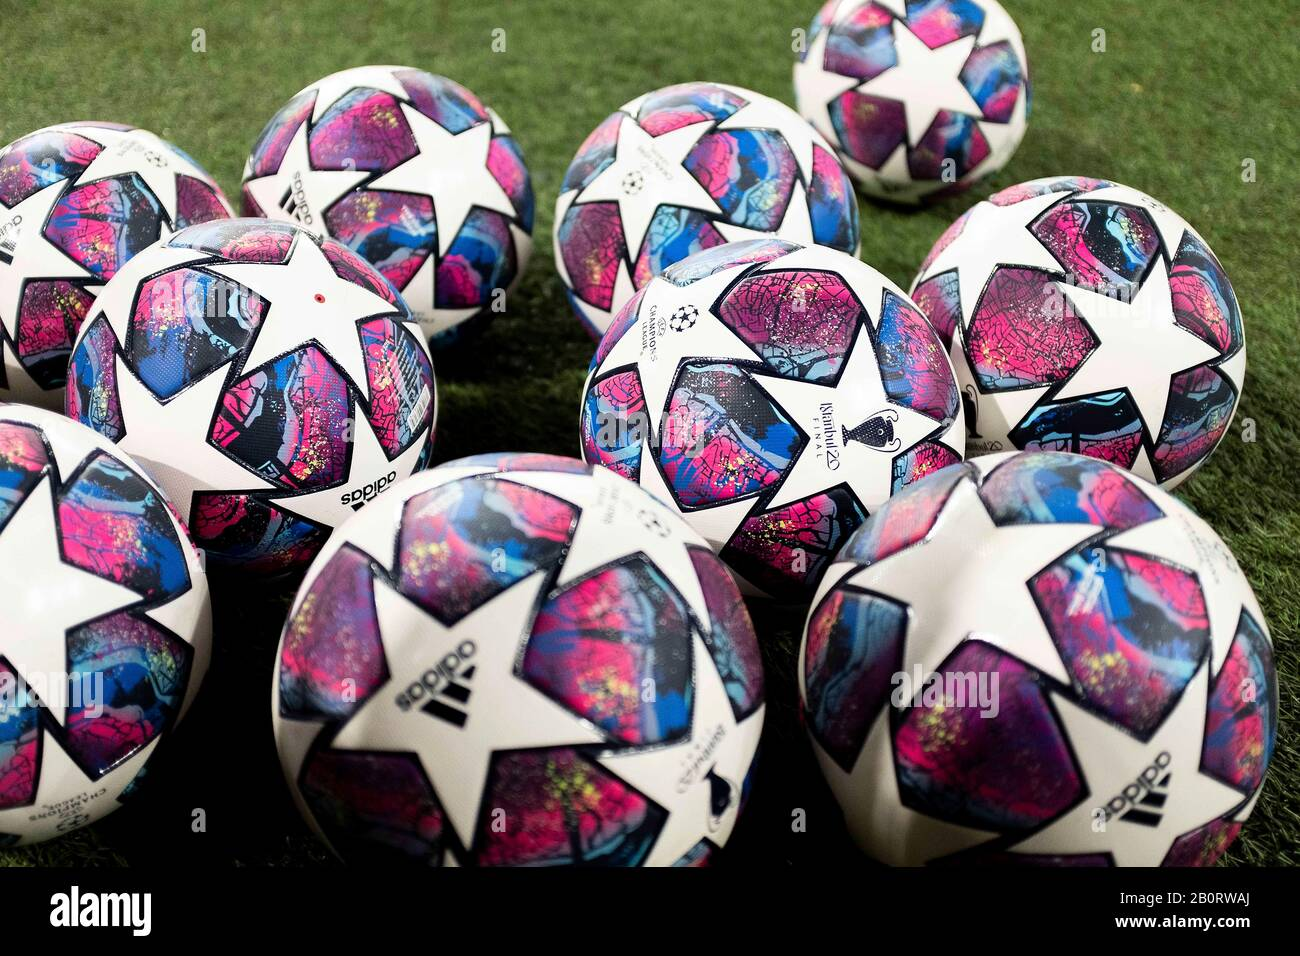 page 2 adidas champions league ball uefa high resolution stock photography and images alamy https www alamy com feature spiaelbaelle ball baelle adidas soccer champions league round of 16 first leg borussia dortmund do paris st germain psg 2 1 on 02182020 in dortmund germany usage worldwide image344732154 html